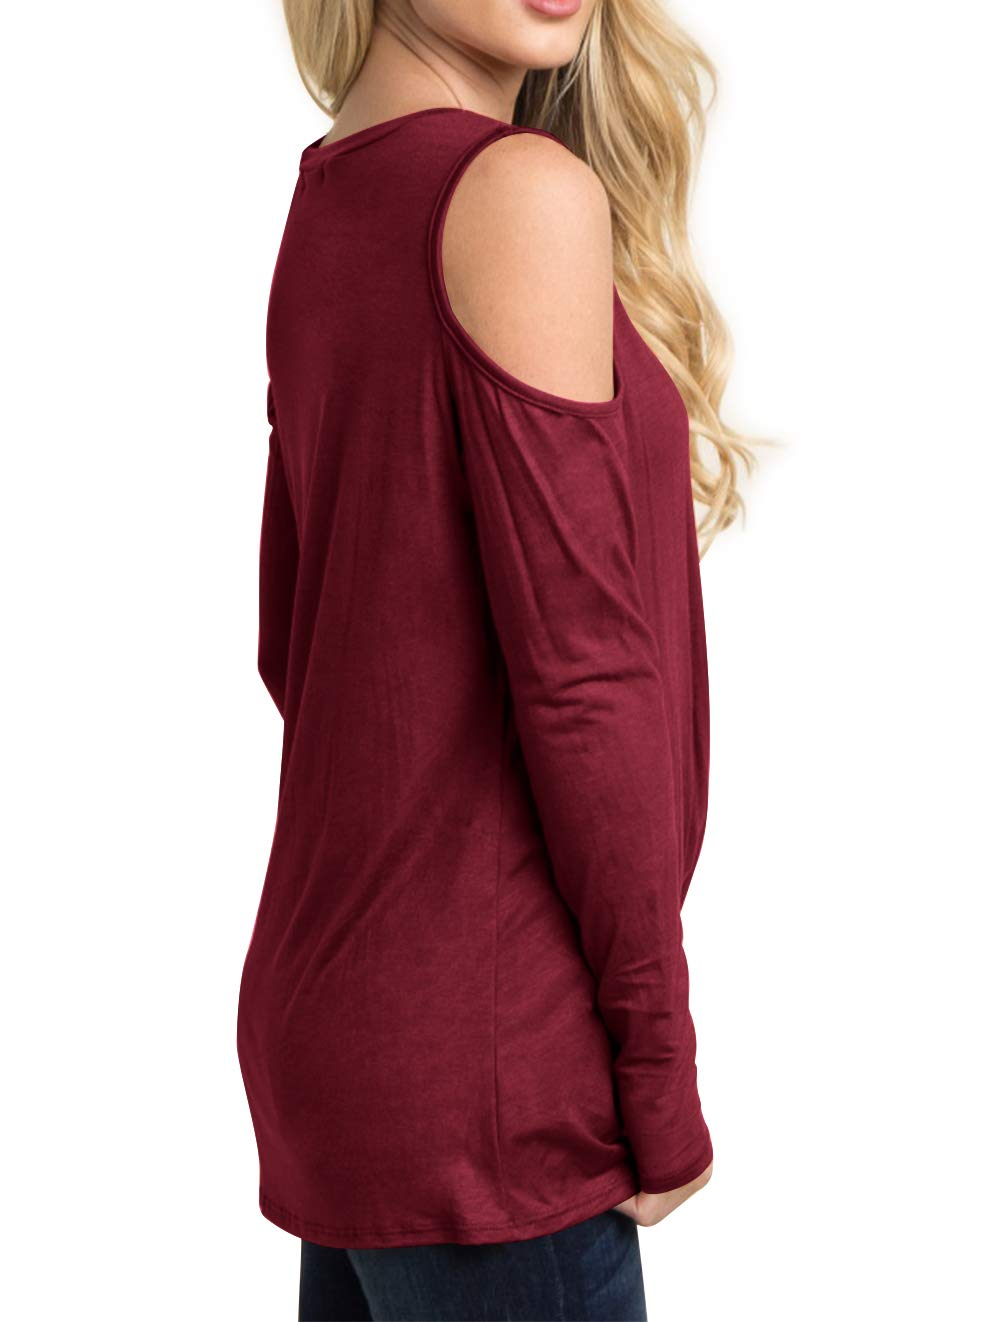 Eanklosco Women's Long Sleeve Cold Shoulder Cut Out T Shirts Casual Knot Tunic Tops (Wine Red, S)